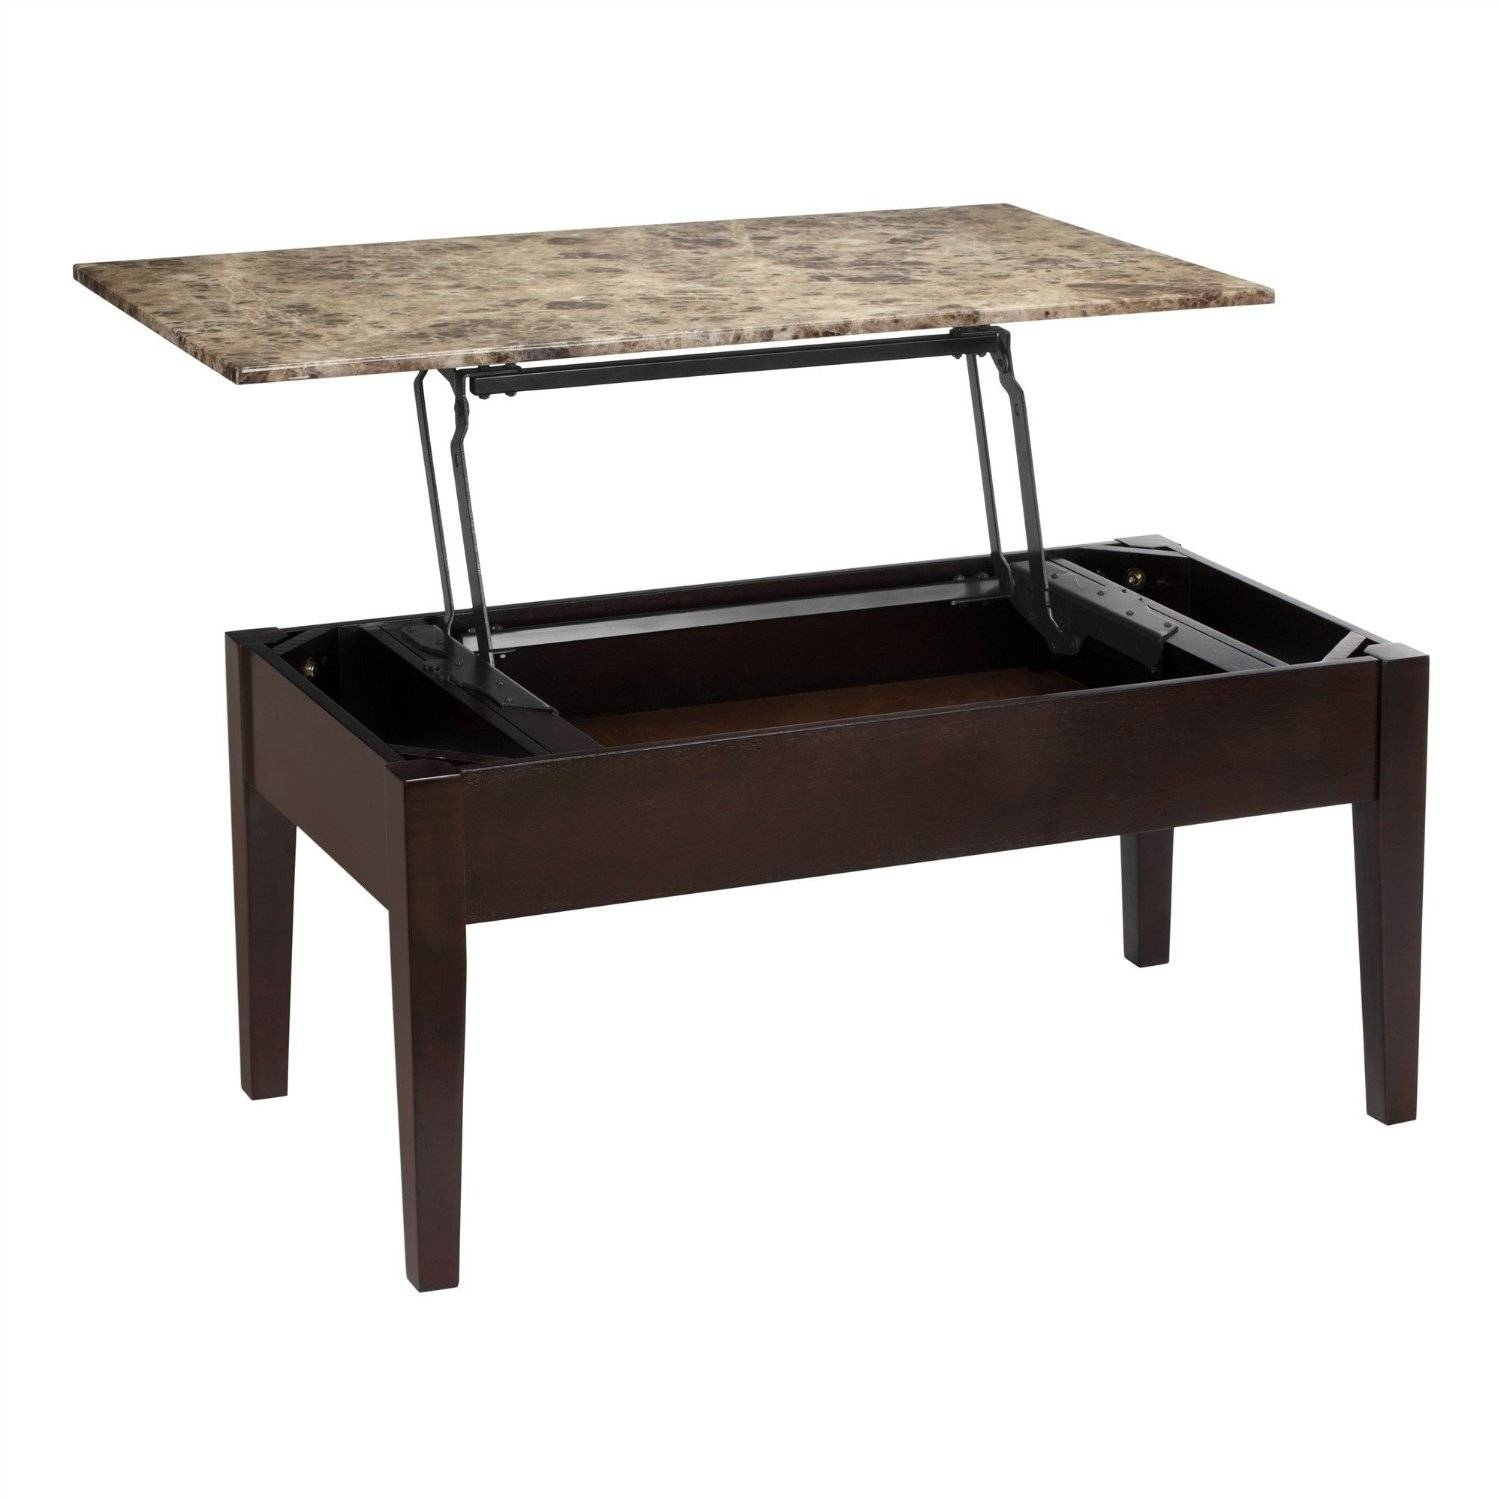 Cheap Coffee Tables Under $100 That Work For Every Style regarding Black Wood Coffee Tables (Image 9 of 30)